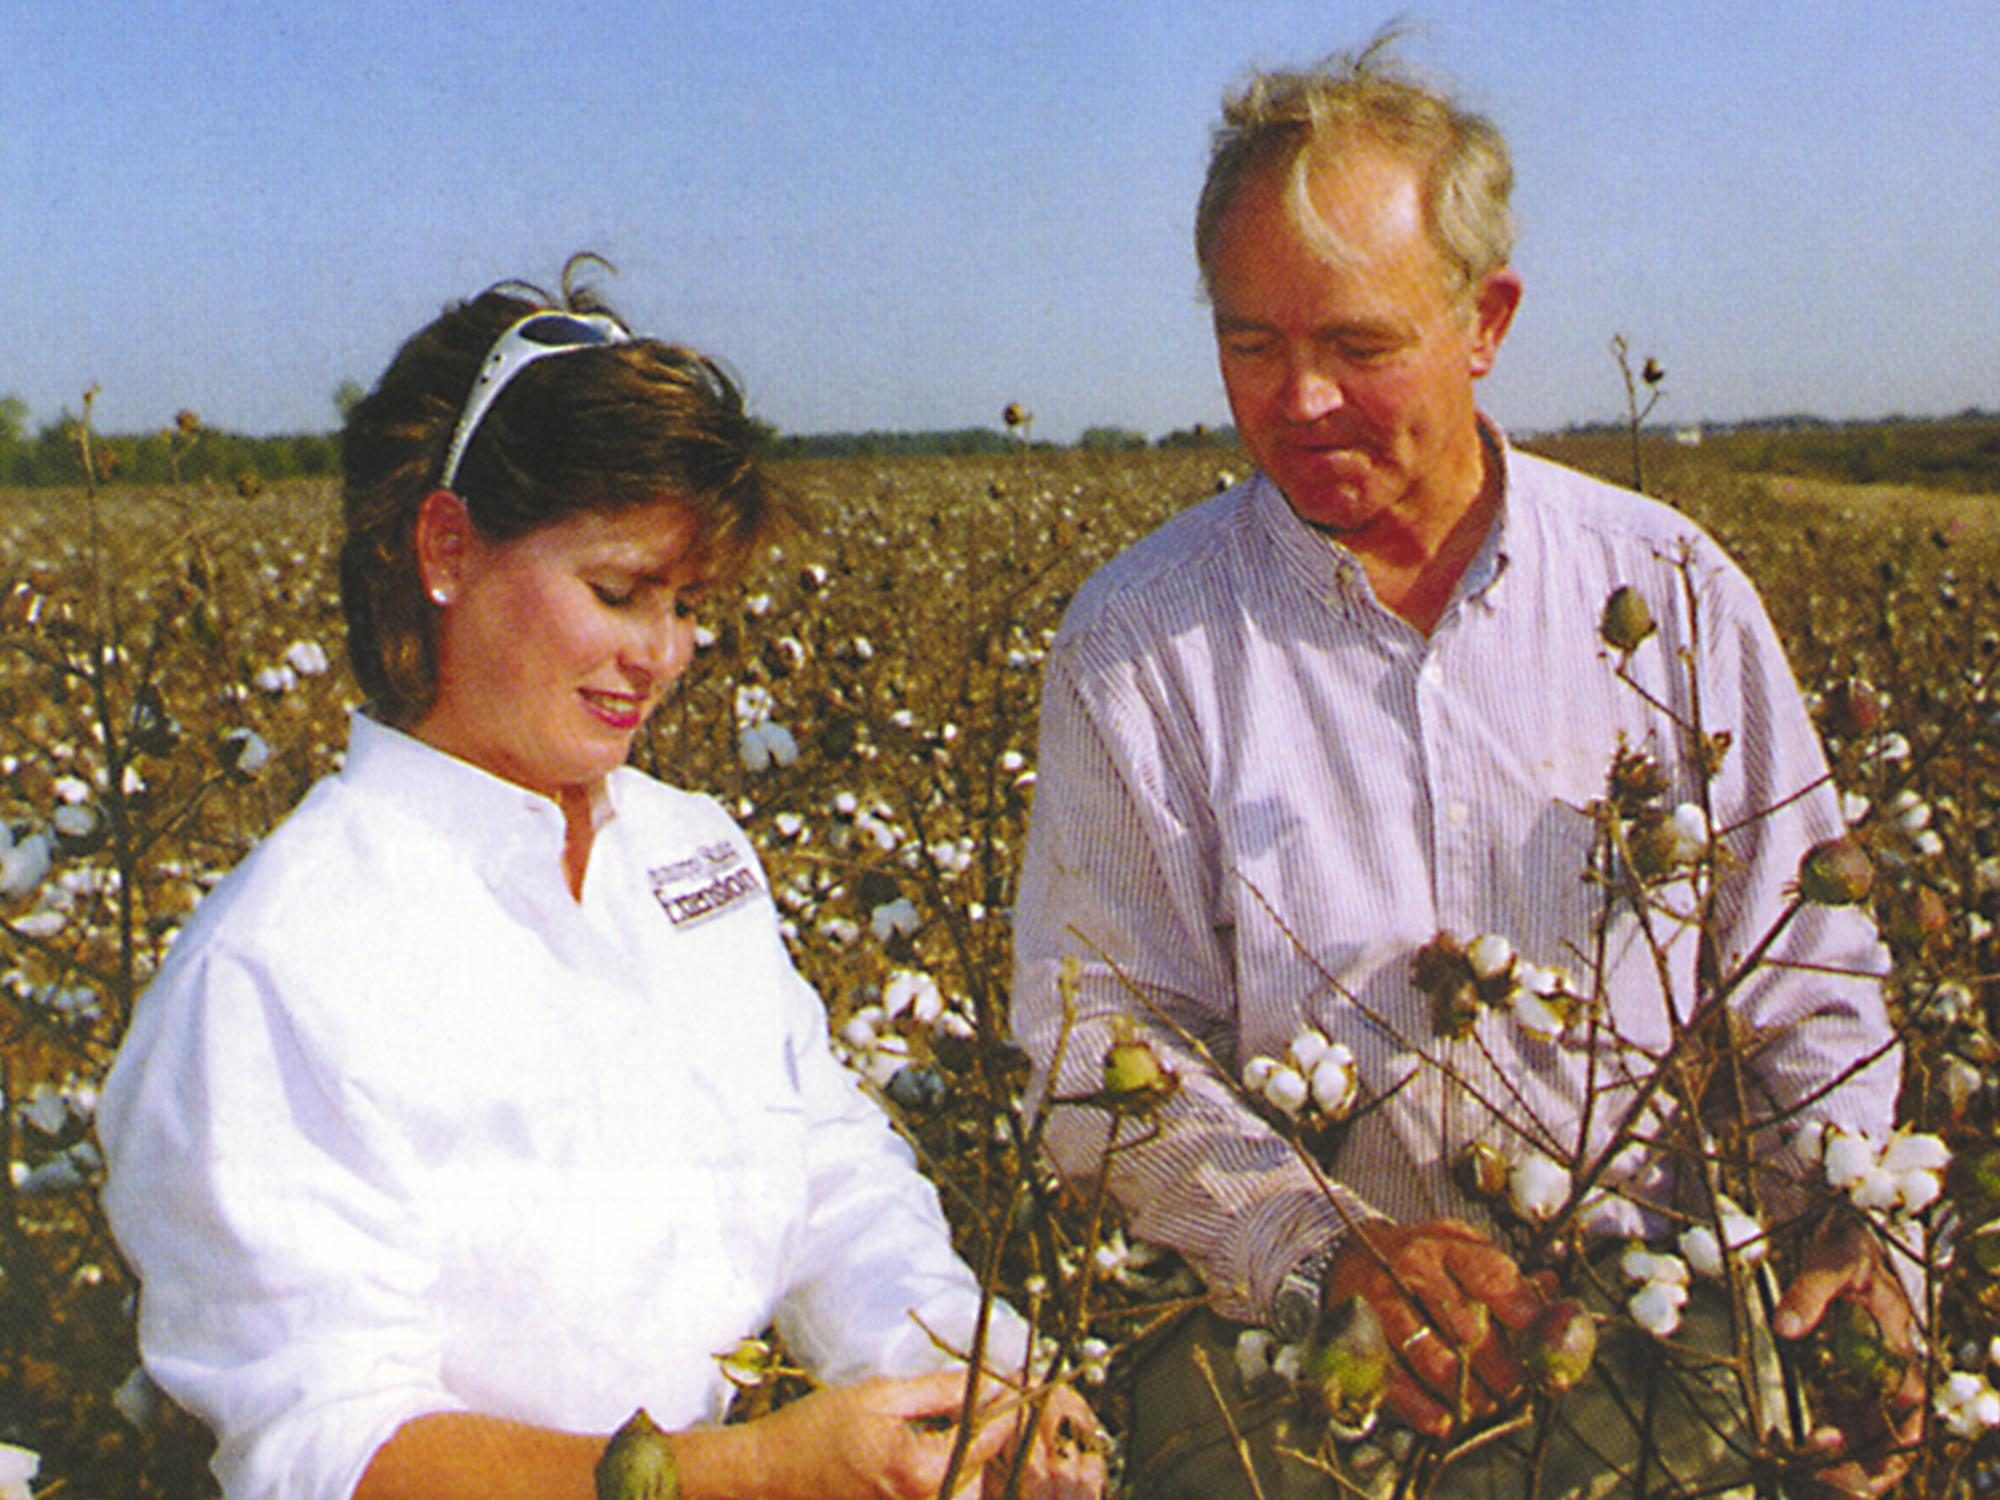 The glass ceiling Ann Fulcher Ruscoe shattered in 1996 was outside in the Mississippi Delta's wide expanse of agricultural fields. In fall 2000, she worked with cotton grower Kenneth Hood of Gunnison. (File photo from the MSU Alumnus Magazine)